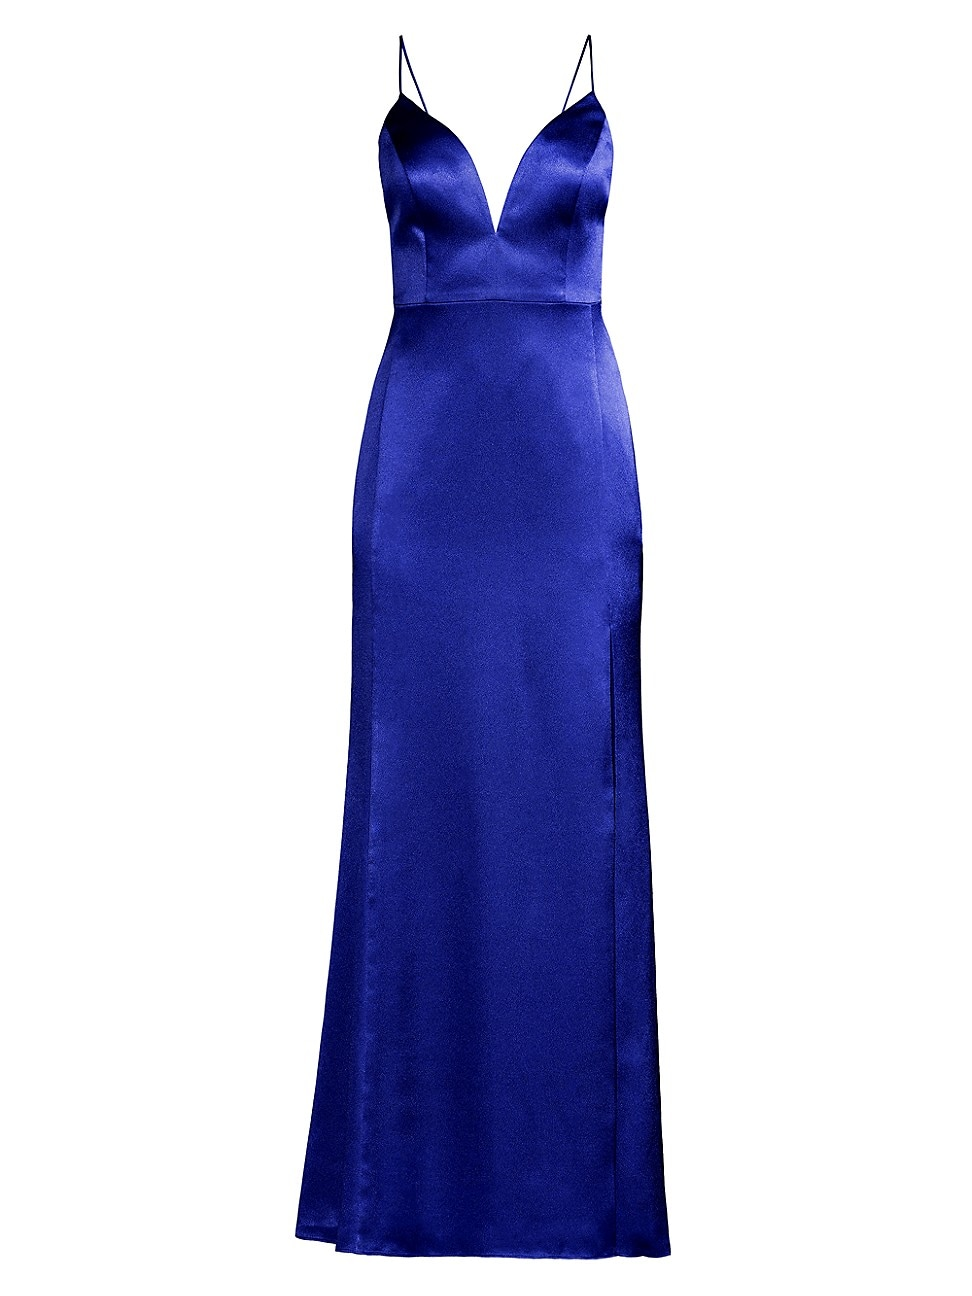 Aidan Mattox WOMEN'S LIQUID SATIN MERMAID DRESS